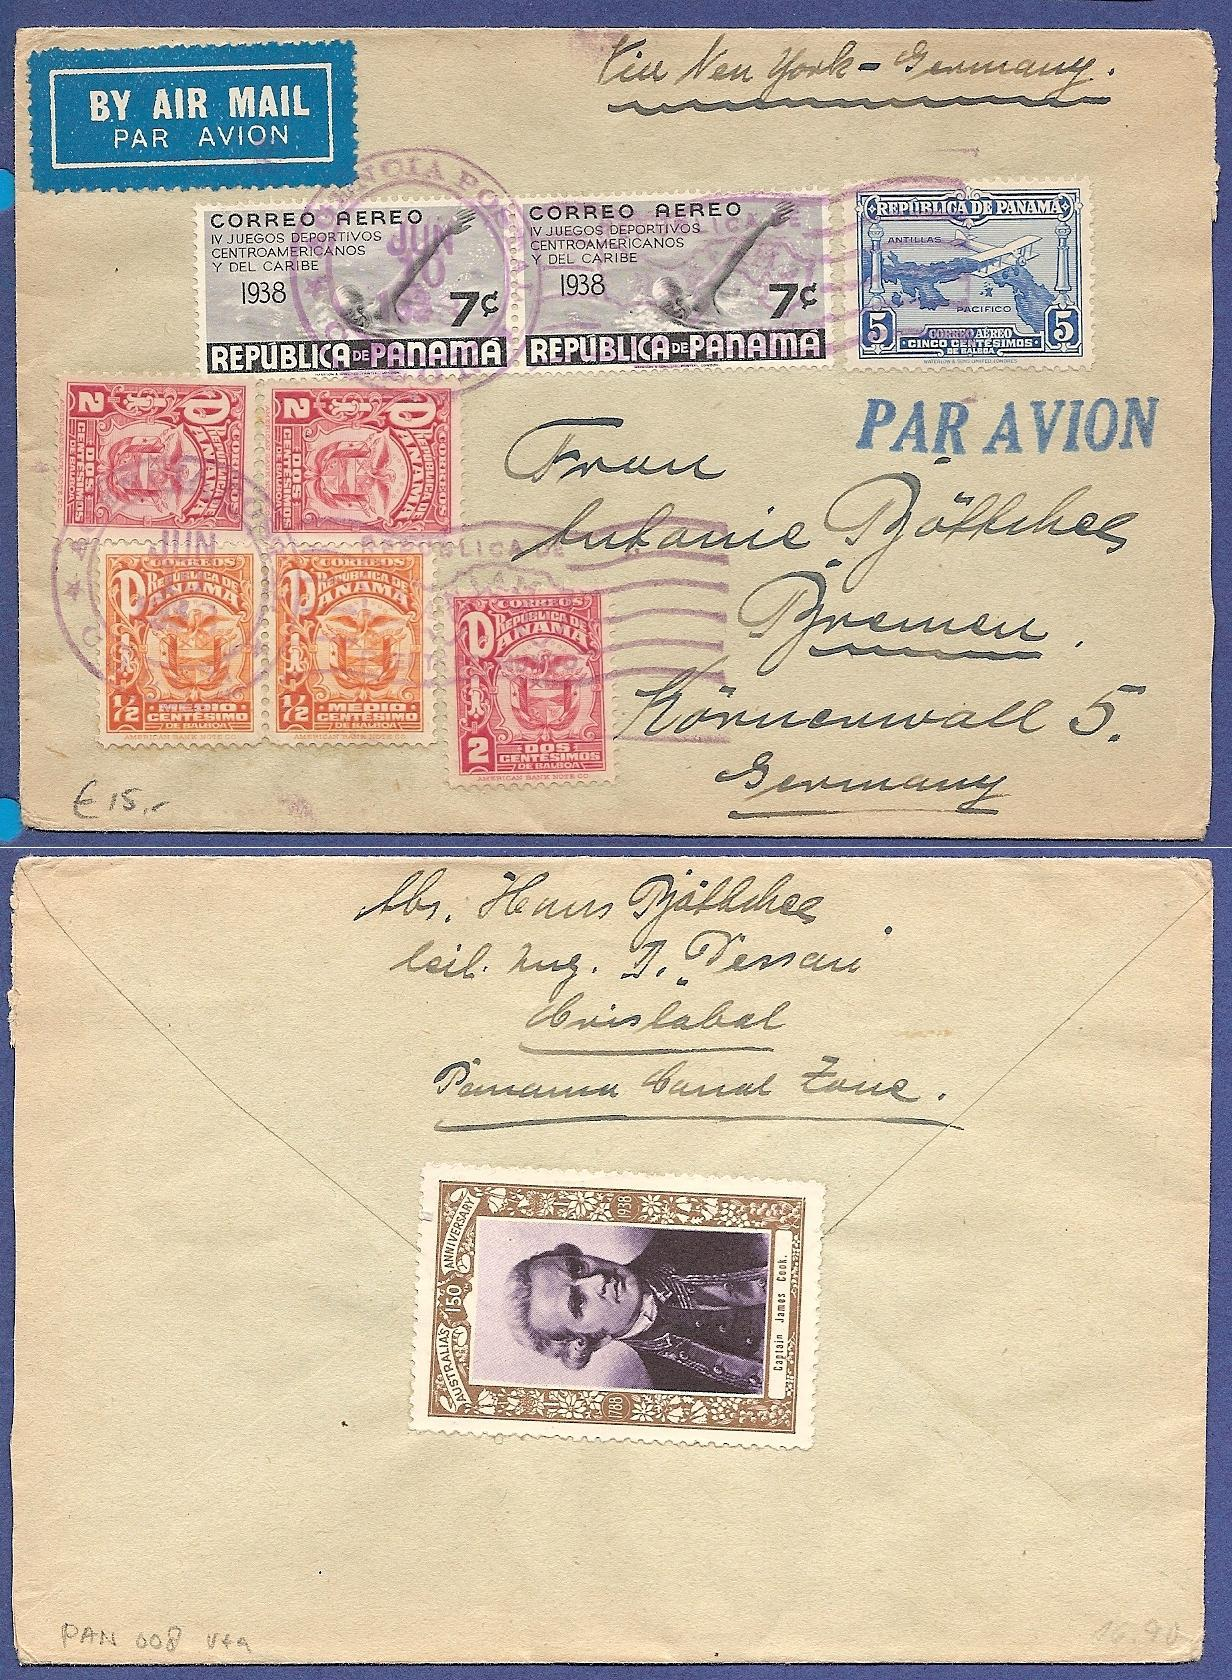 PANAMA air cover 1933 Colon to Germany PAN008